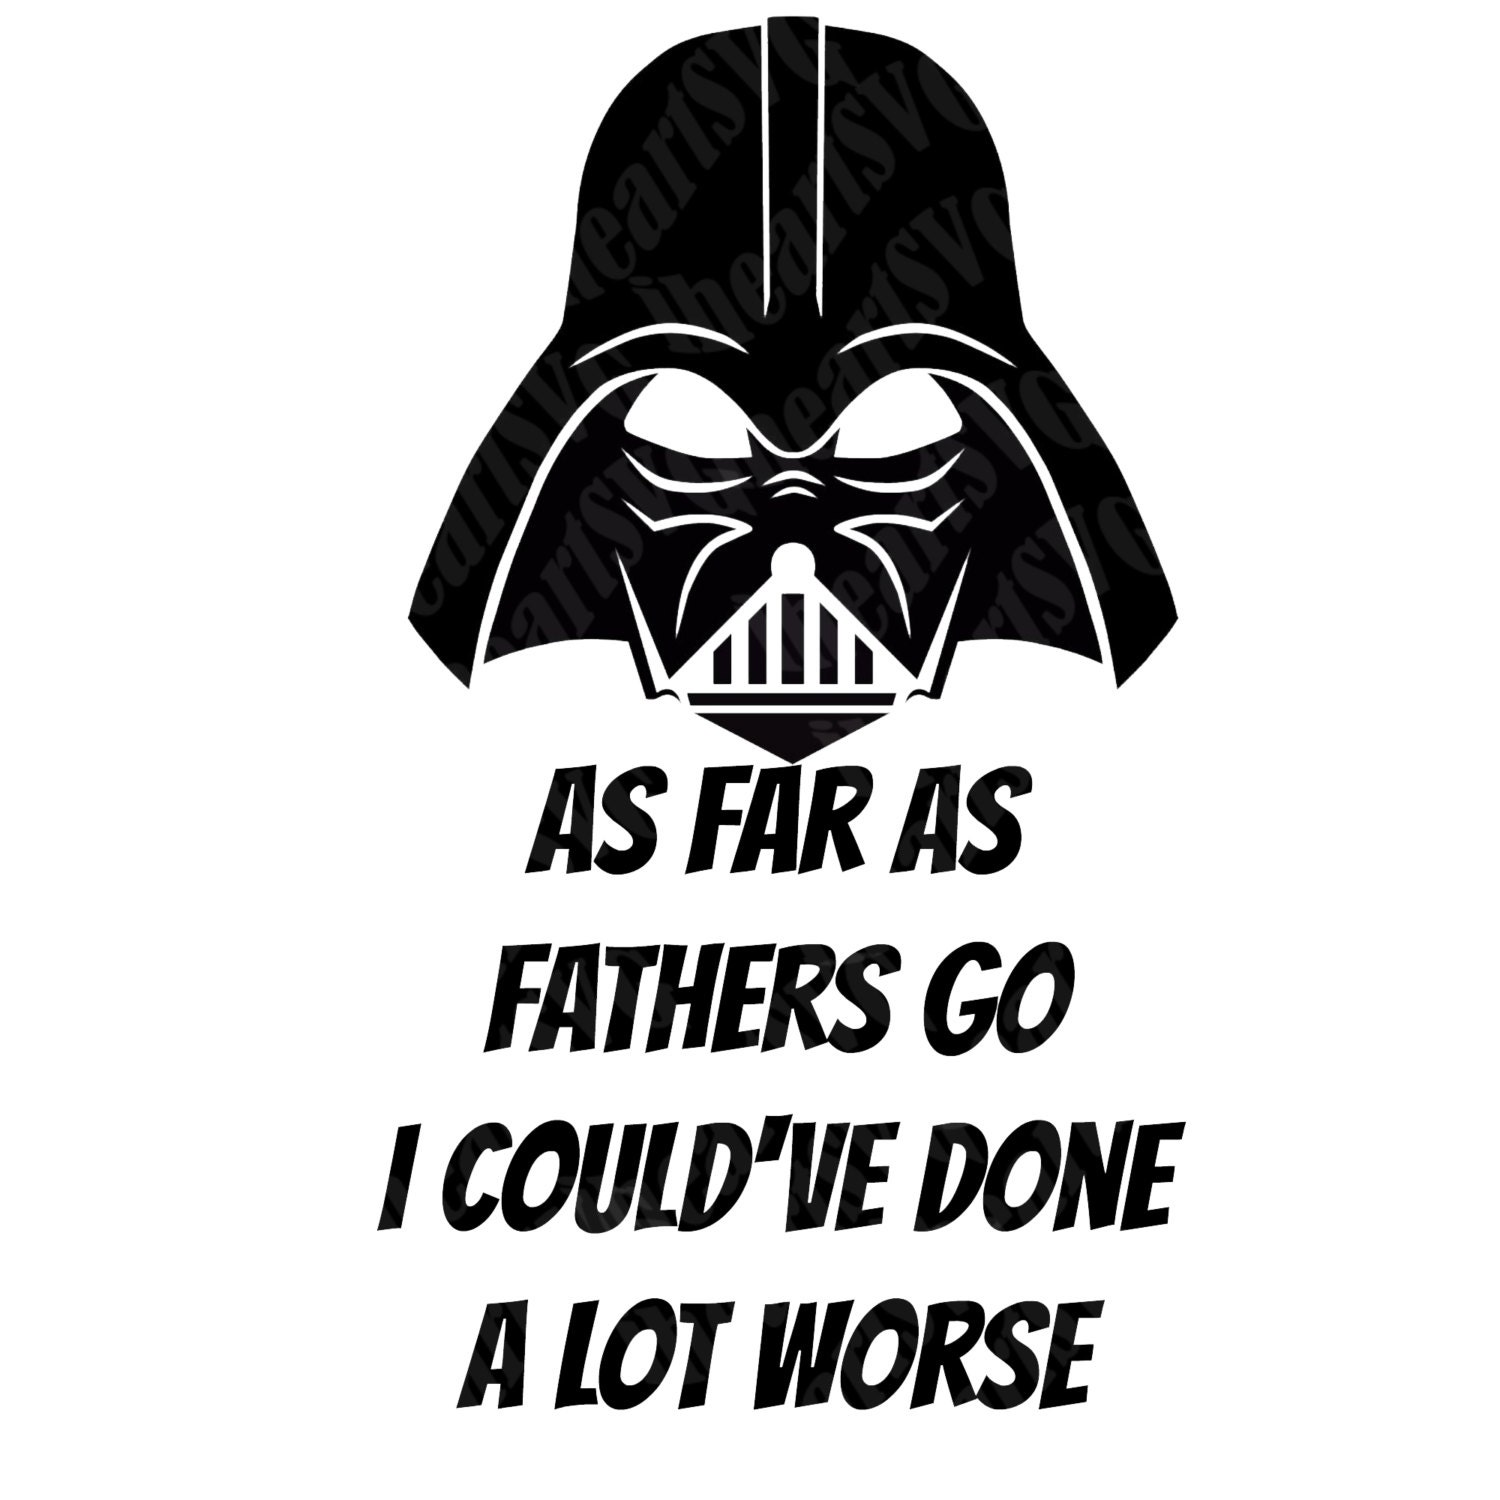 Free Or for your dads birthday, anniversary 99 Cents 50 Off Darth Vader Father S Day Svg Png Jpg Digital File Instant Download Die Cut Machine Cricut Explore Silhouette Cameo Etsy On Sale SVG, PNG, EPS, DXF File